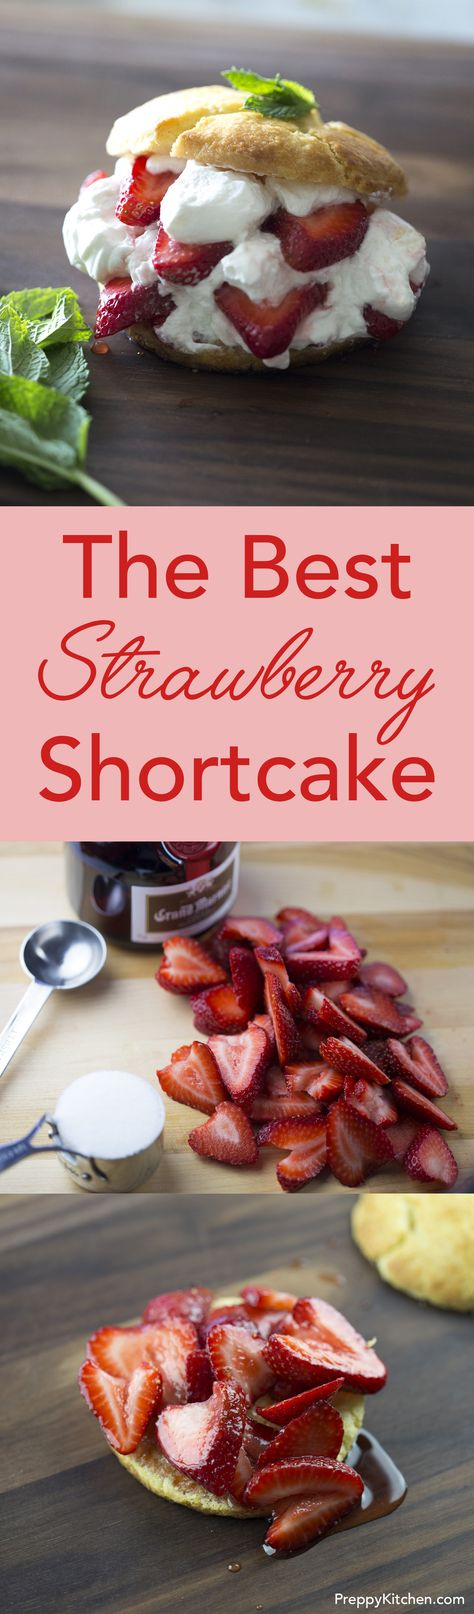 This easy to make strawberry shortcake is destined to be a hit wherever it's served. Click over for the full recipe and video!